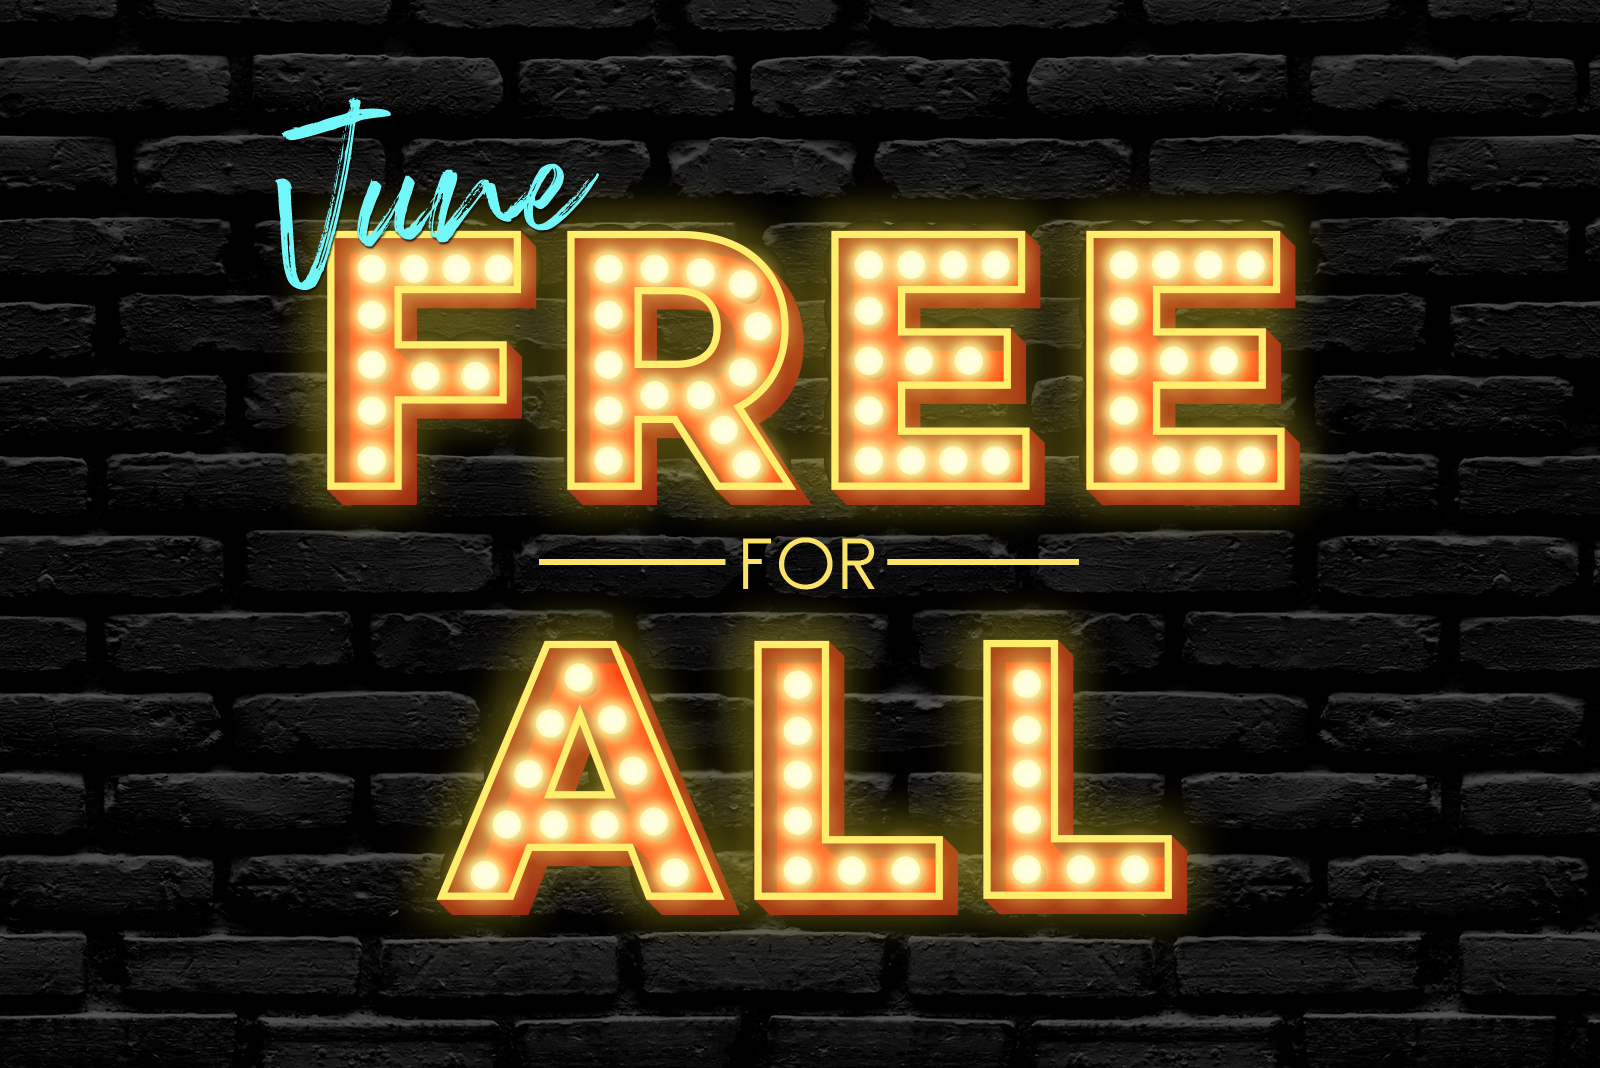 June 2021 free for all